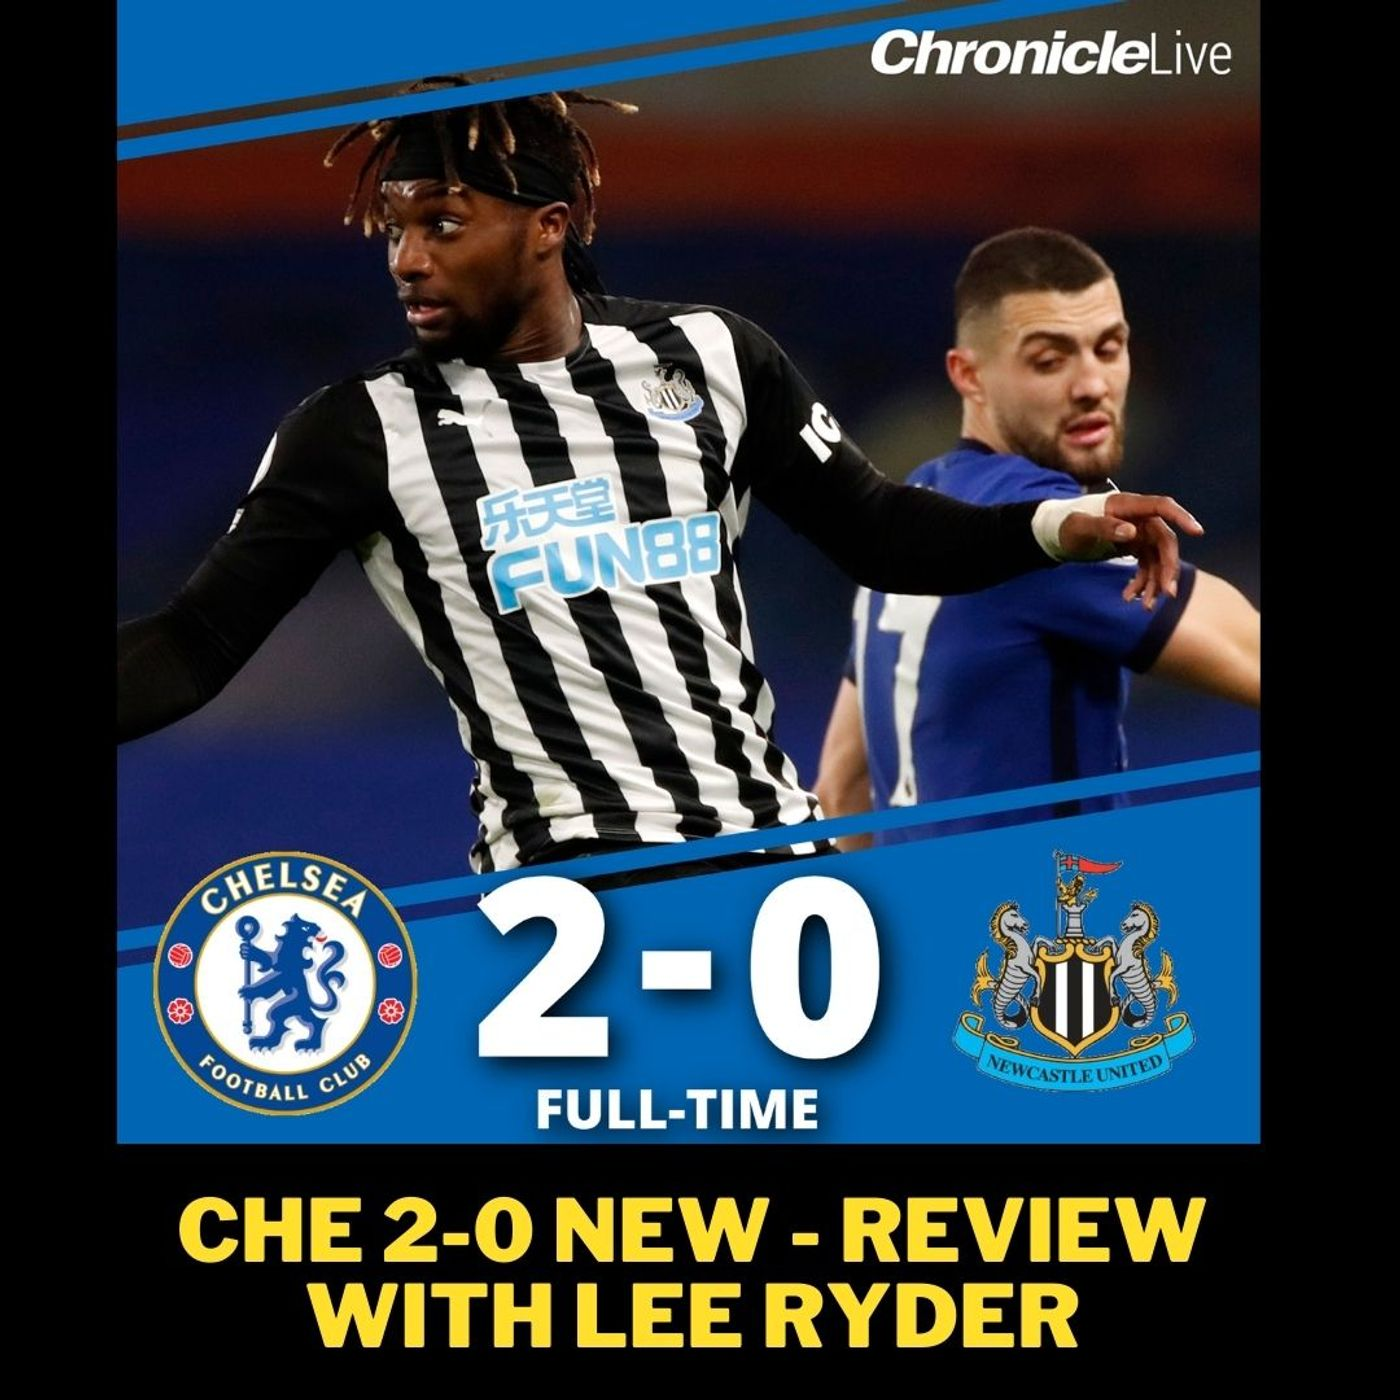 'The fight doesn't seem to be there' - Lee Ryder's message after Newcastle lose 2-0 to Chelsea